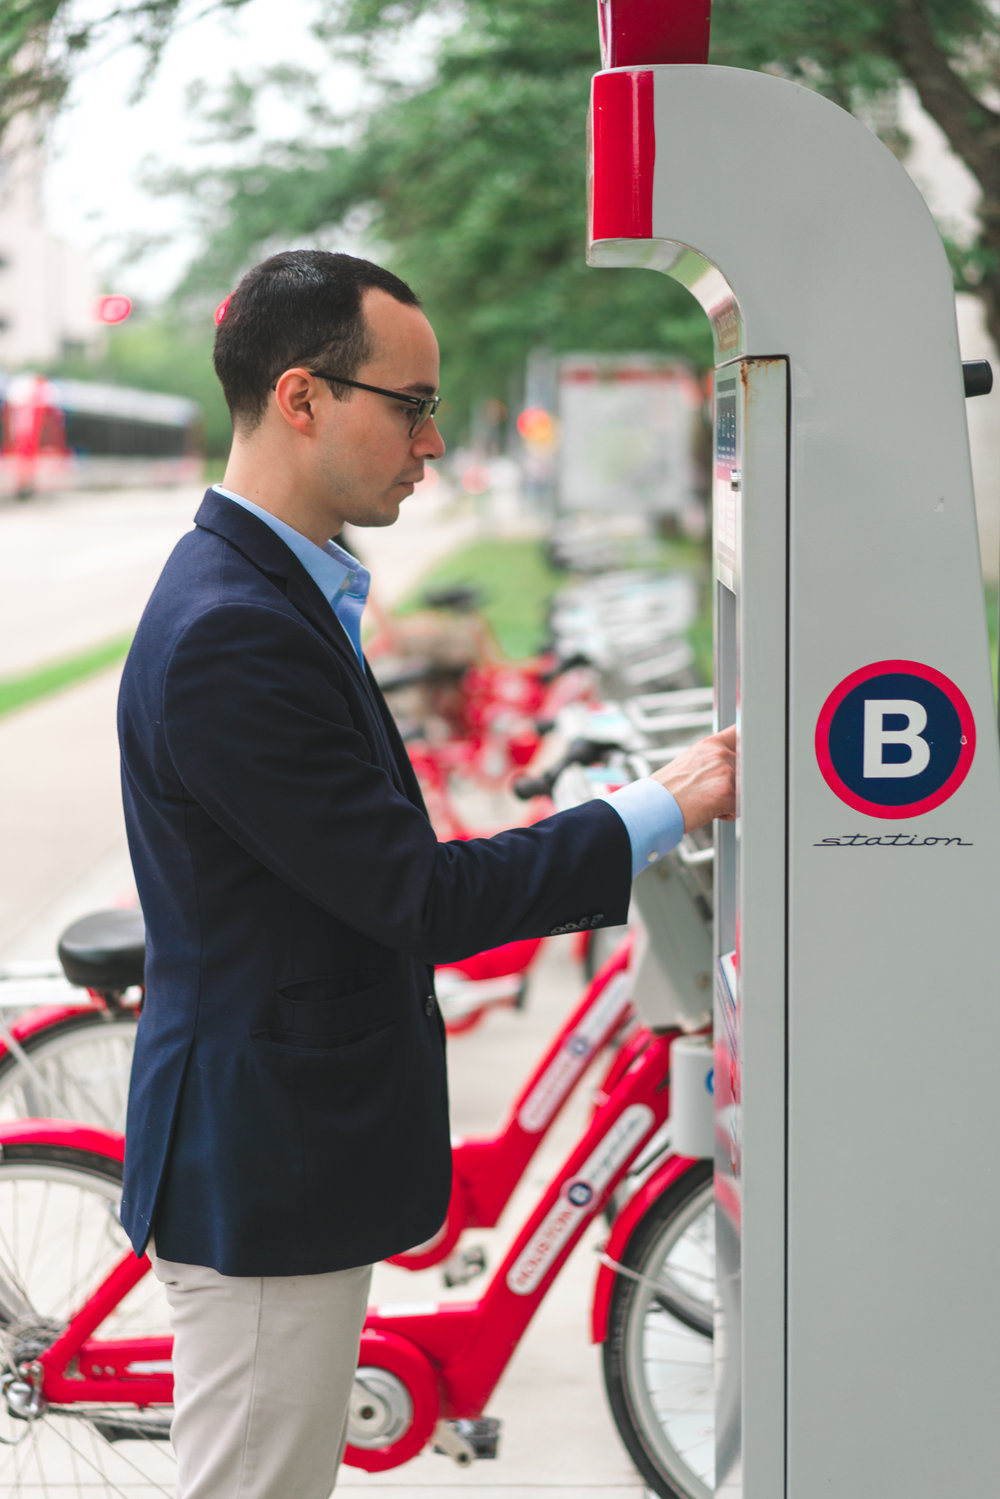 Rent Houston BCycle